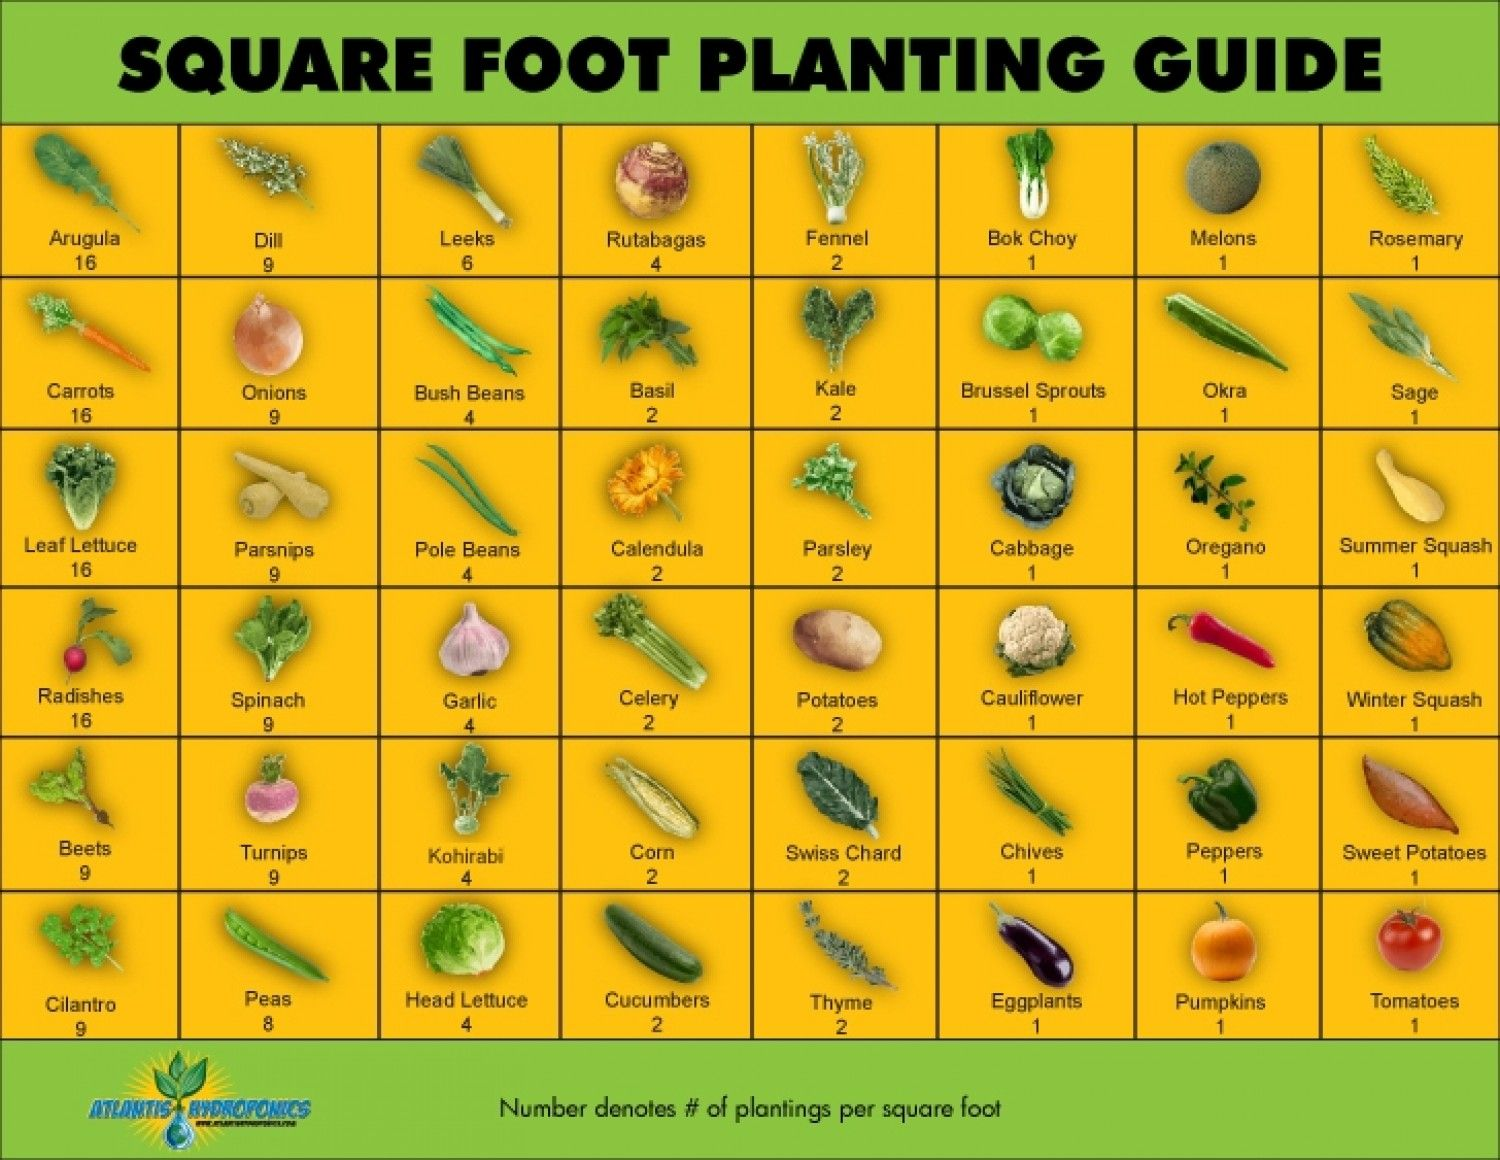 Intensive vegetable garden plans - Square Foot Planting Guide Are You Deep In To Planning Your Vegetable Garden Small Space Gardeners Tend To Get Good Yield And Lot Of Variety With A Square